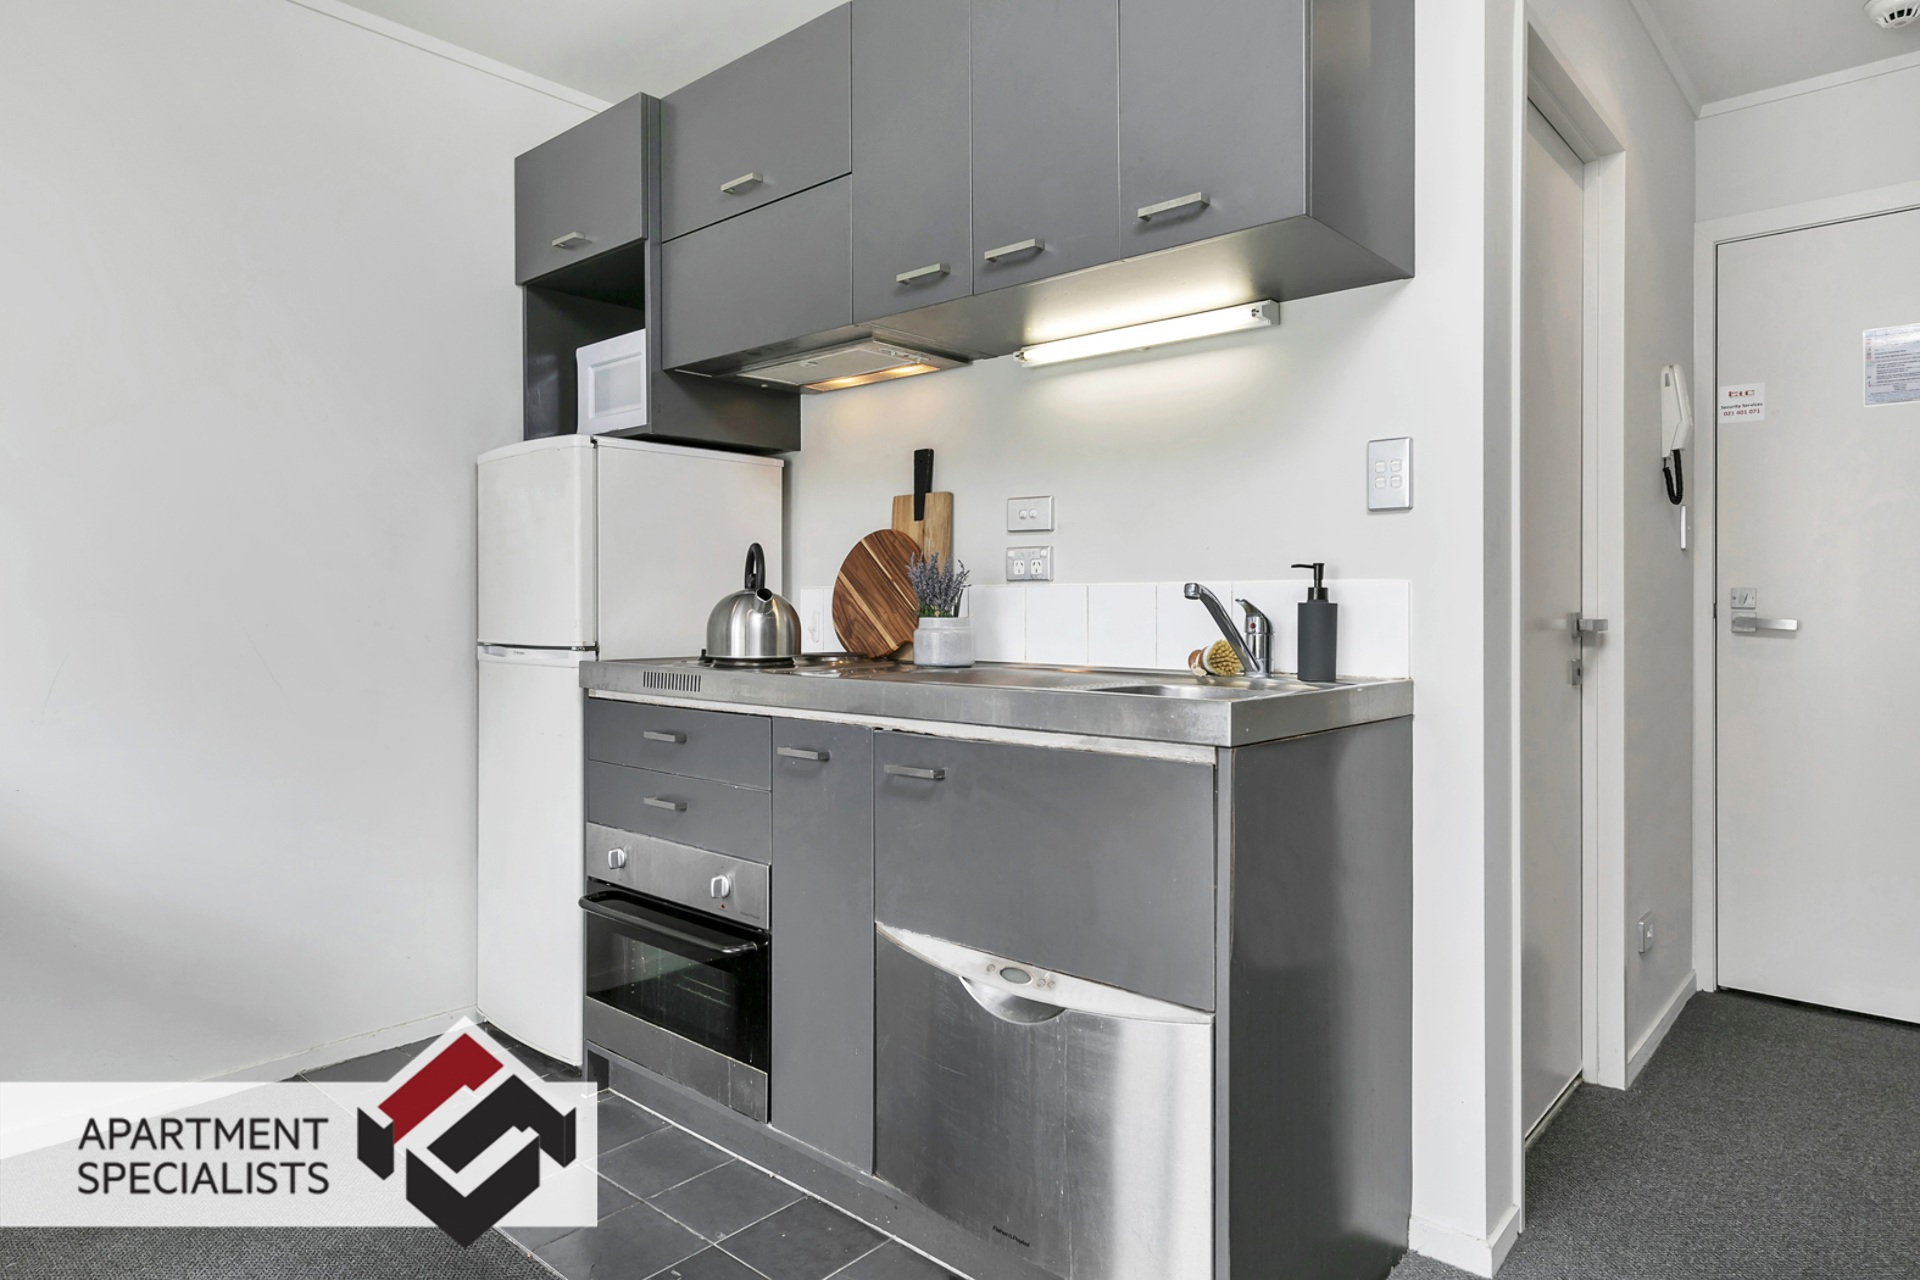 5 | 430 Queen Street, City Centre | Apartment Specialists